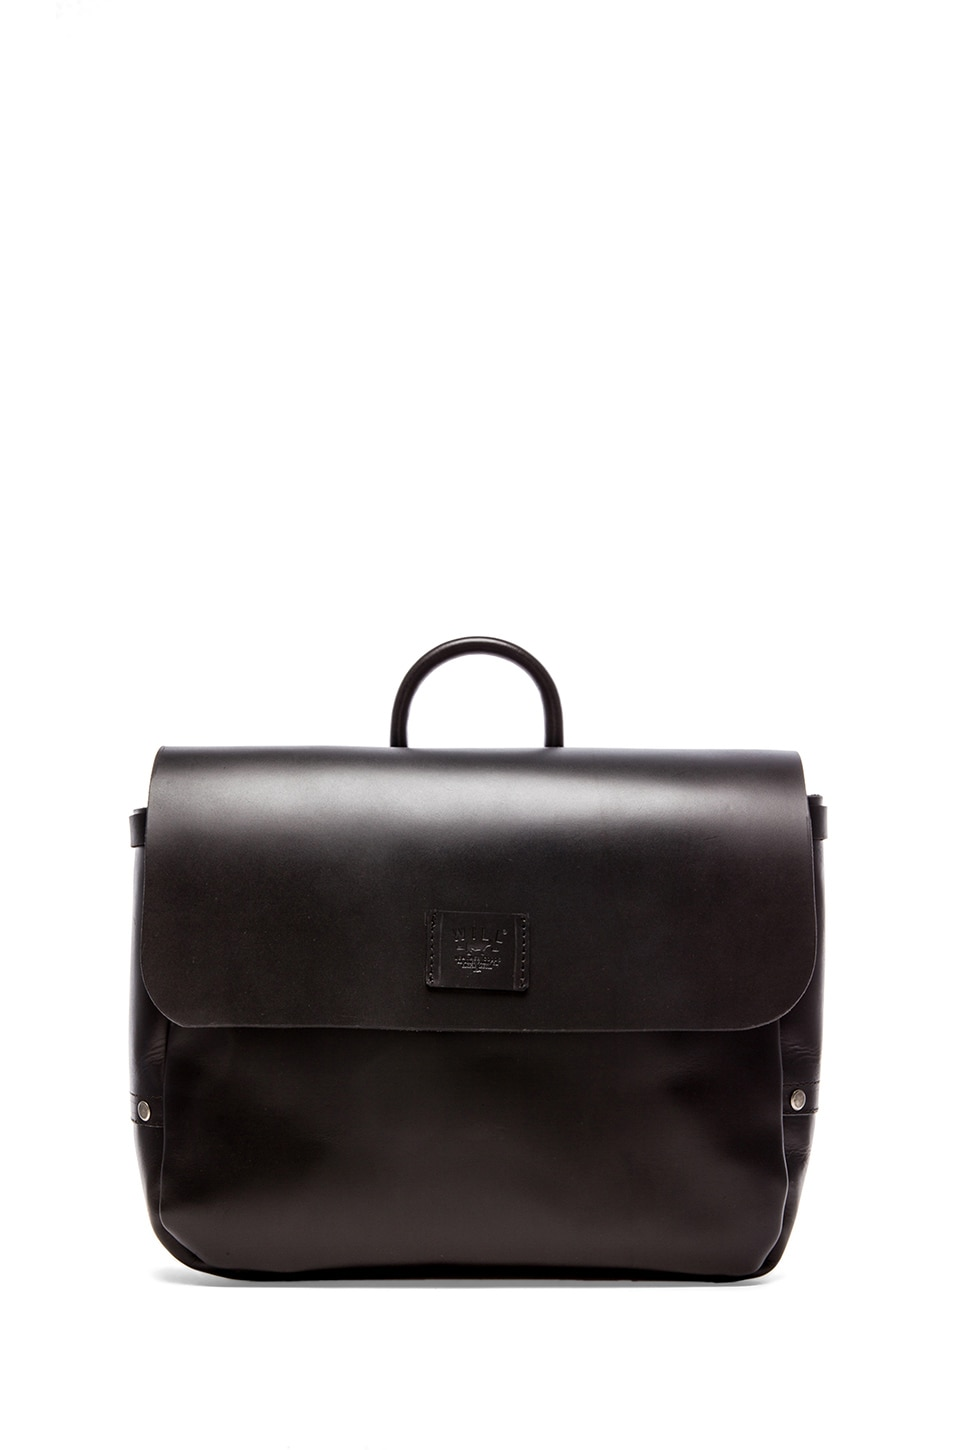 WILL Leather Goods Douglas Postal Bag in Black